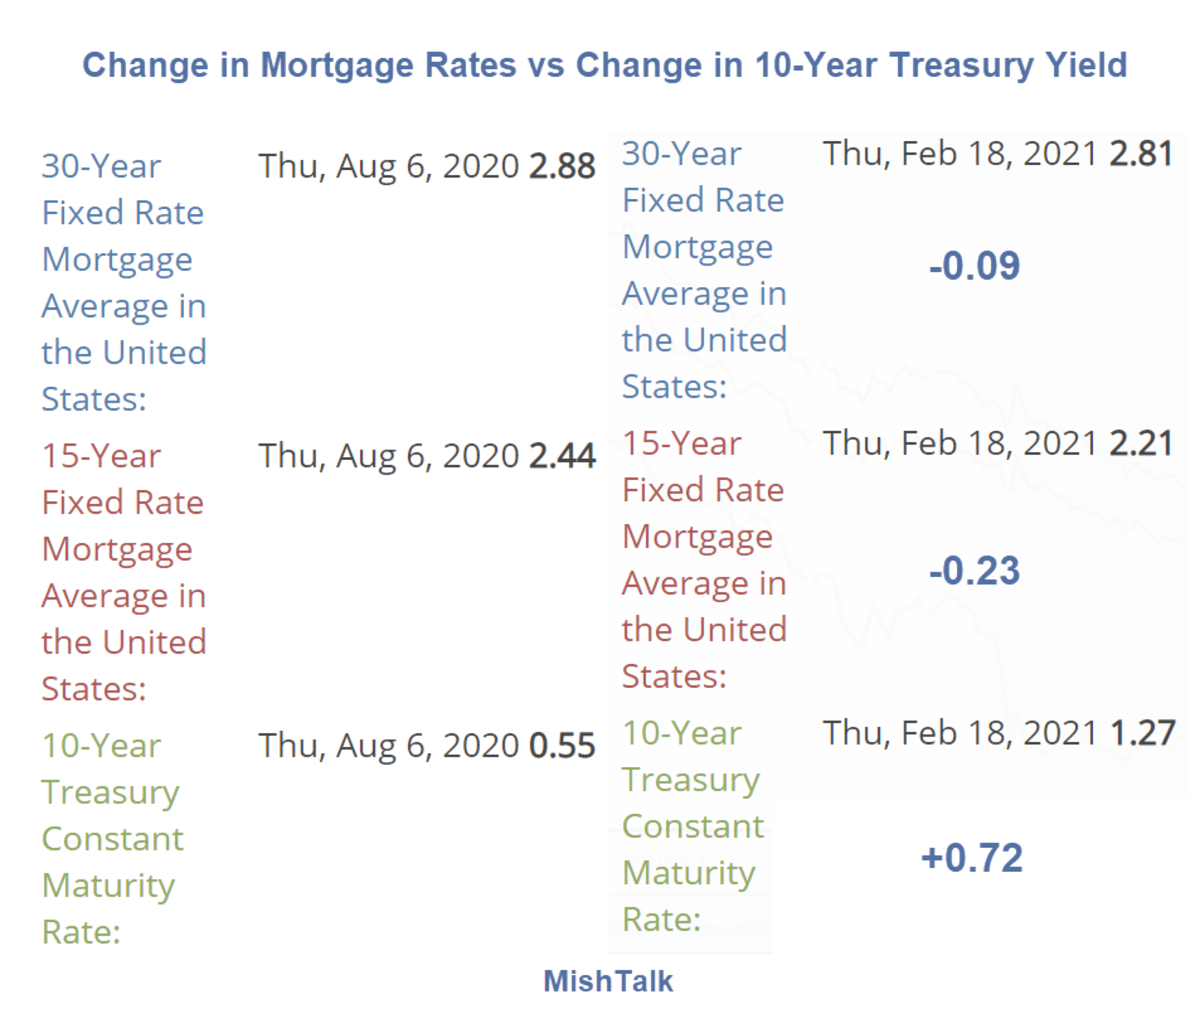 Change in Mortgage Rates vs Change in 10-Year Treasury Yield